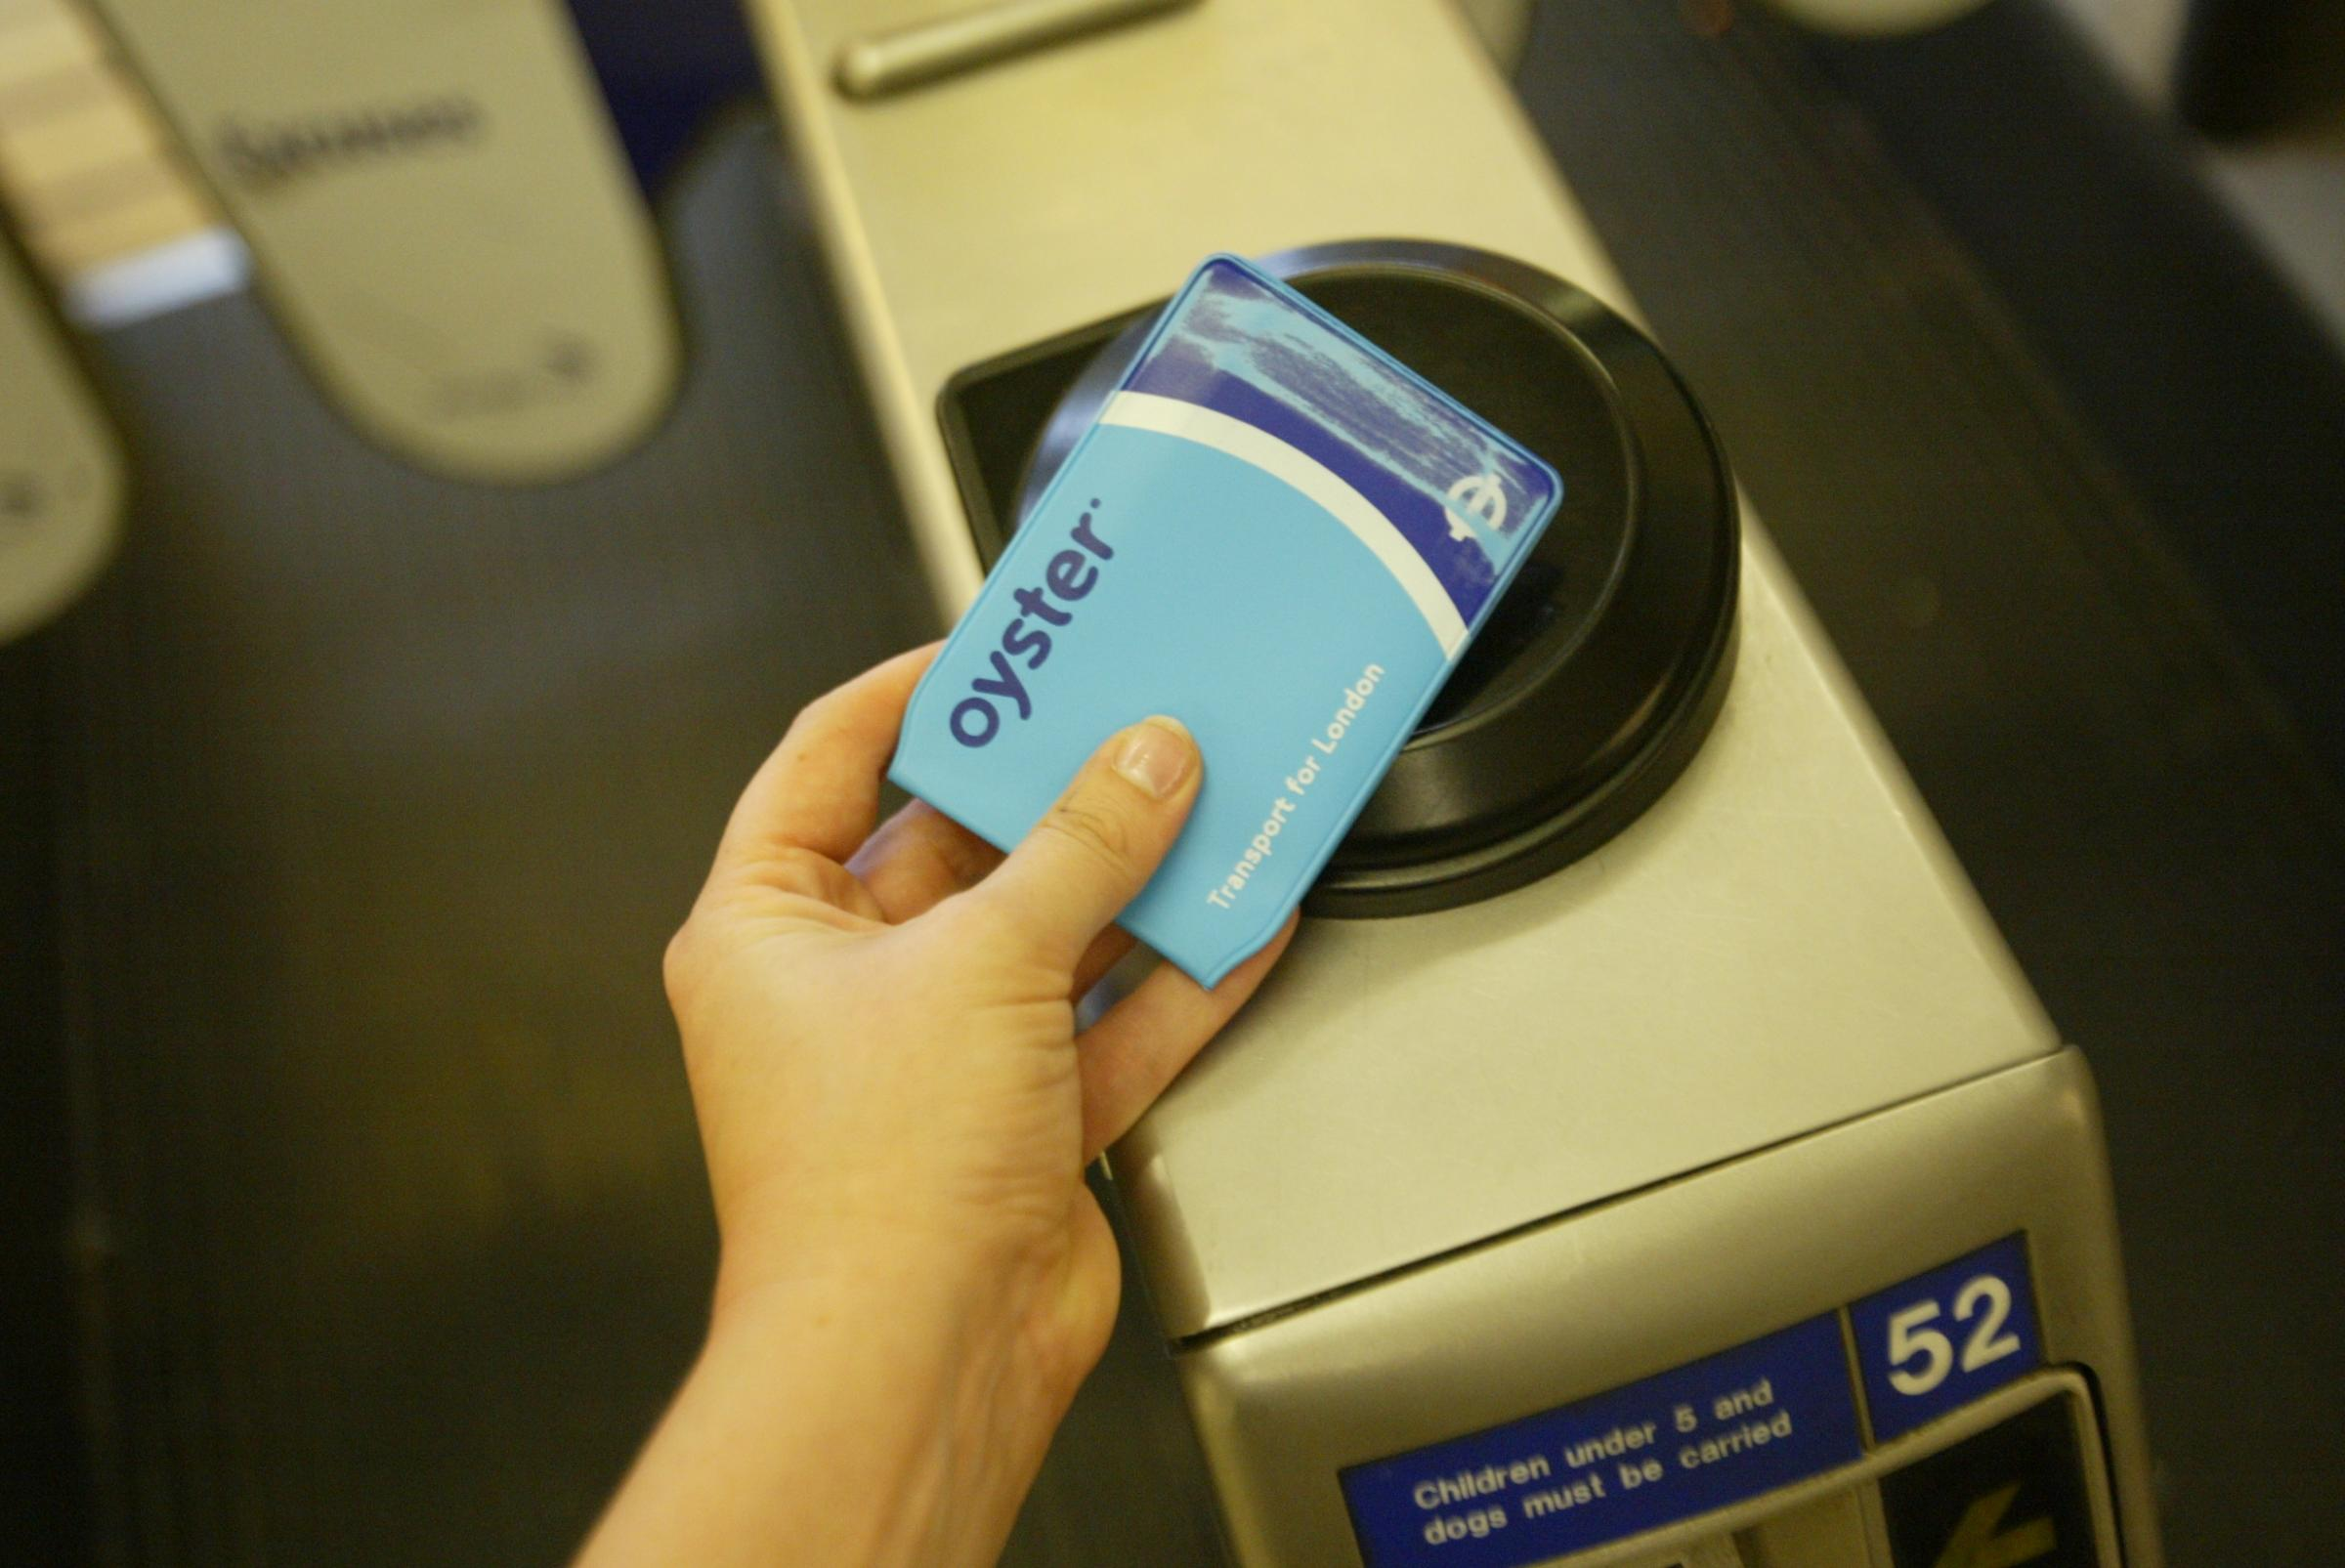 Oyster cards were introduced in 2003